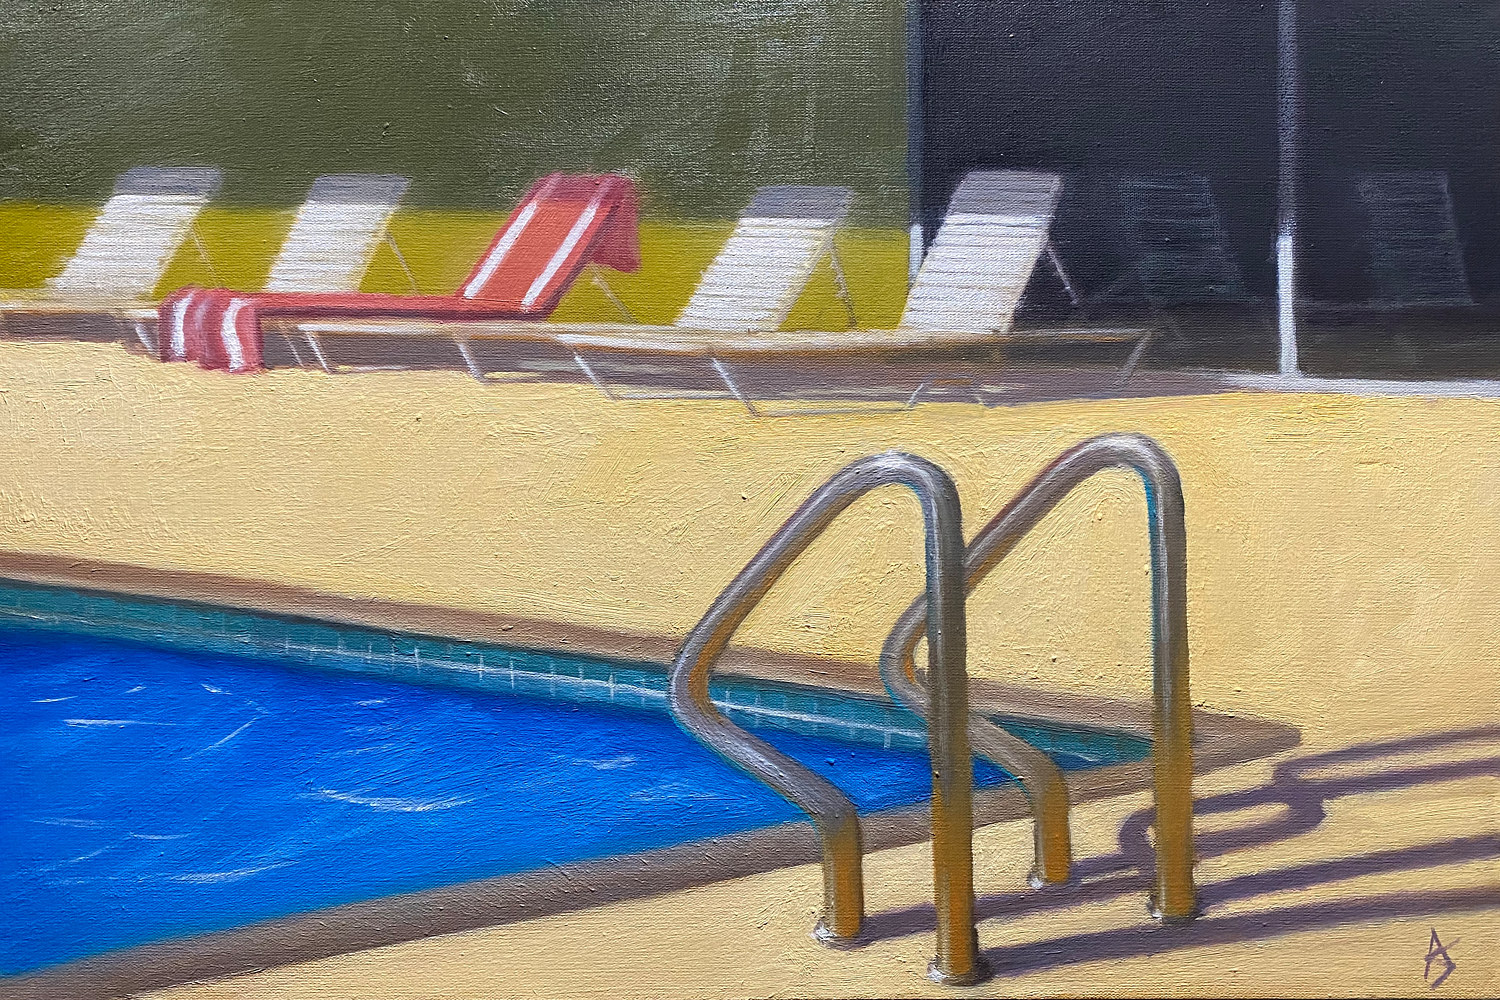 Oil painting Poolside 2 - Alex Selkowitz by Alex Selkowitz